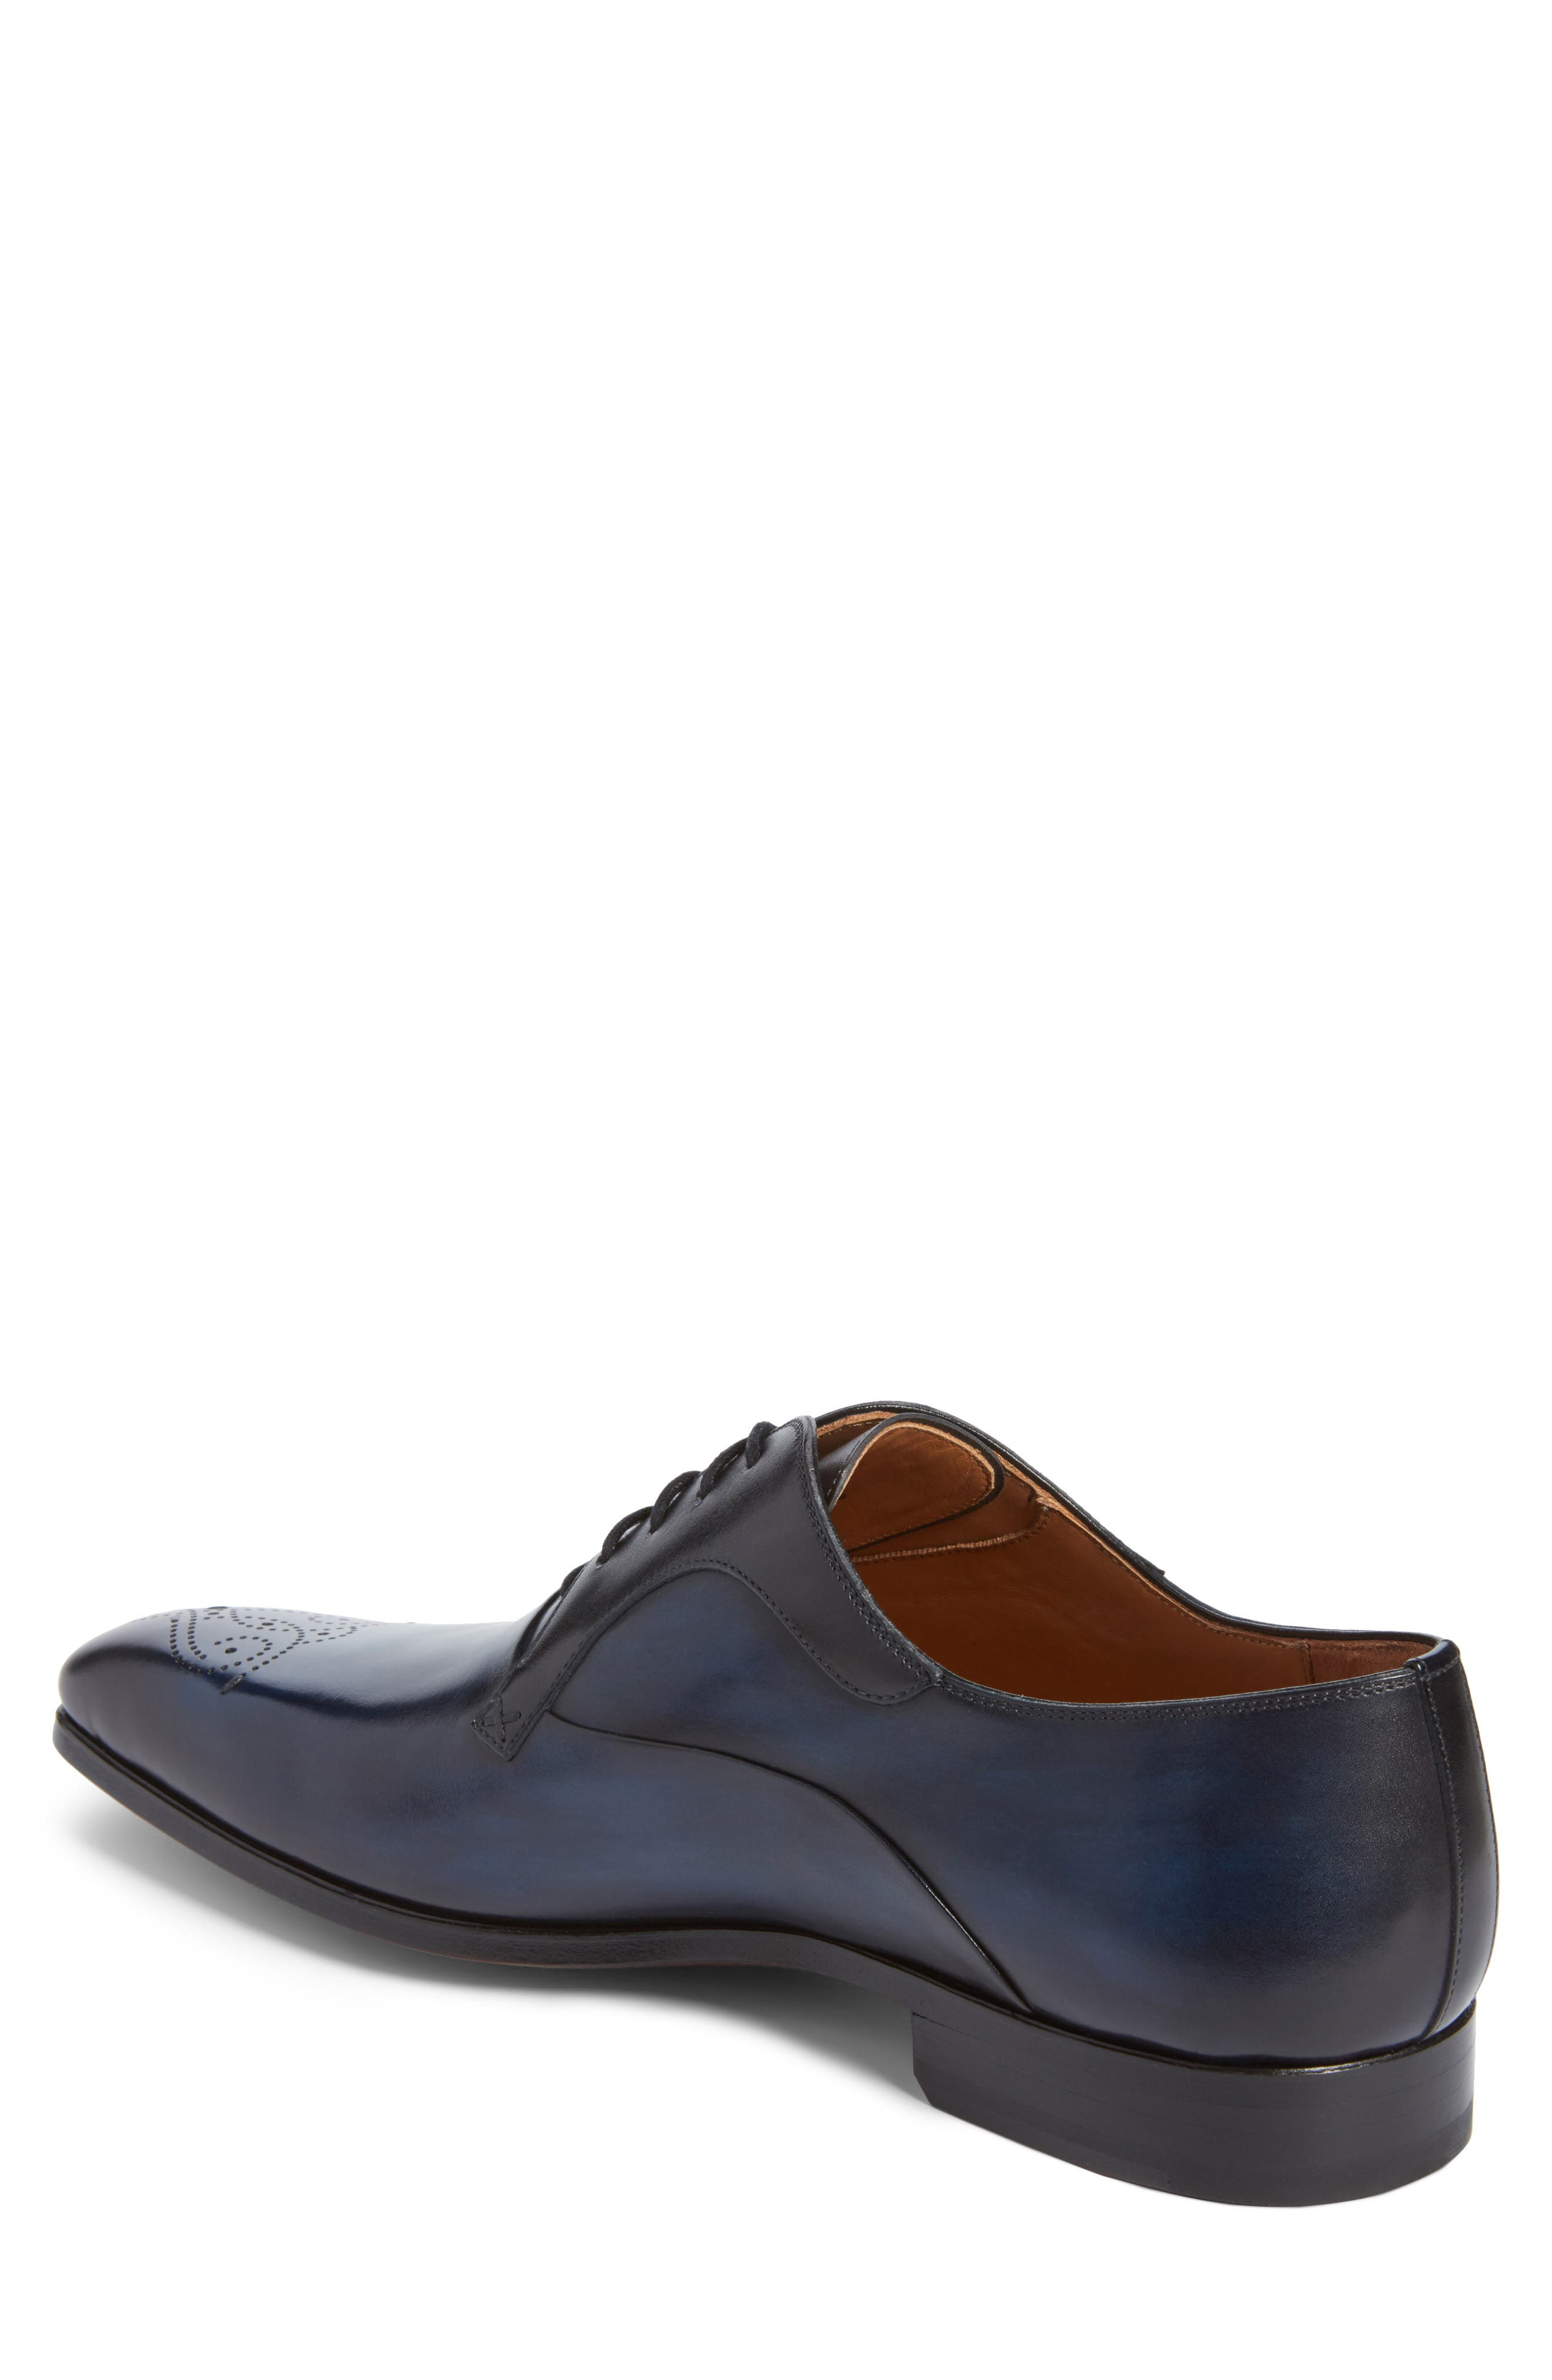 Salva Medallion Toe Oxford,                             Alternate thumbnail 2, color,                             Navy Leather